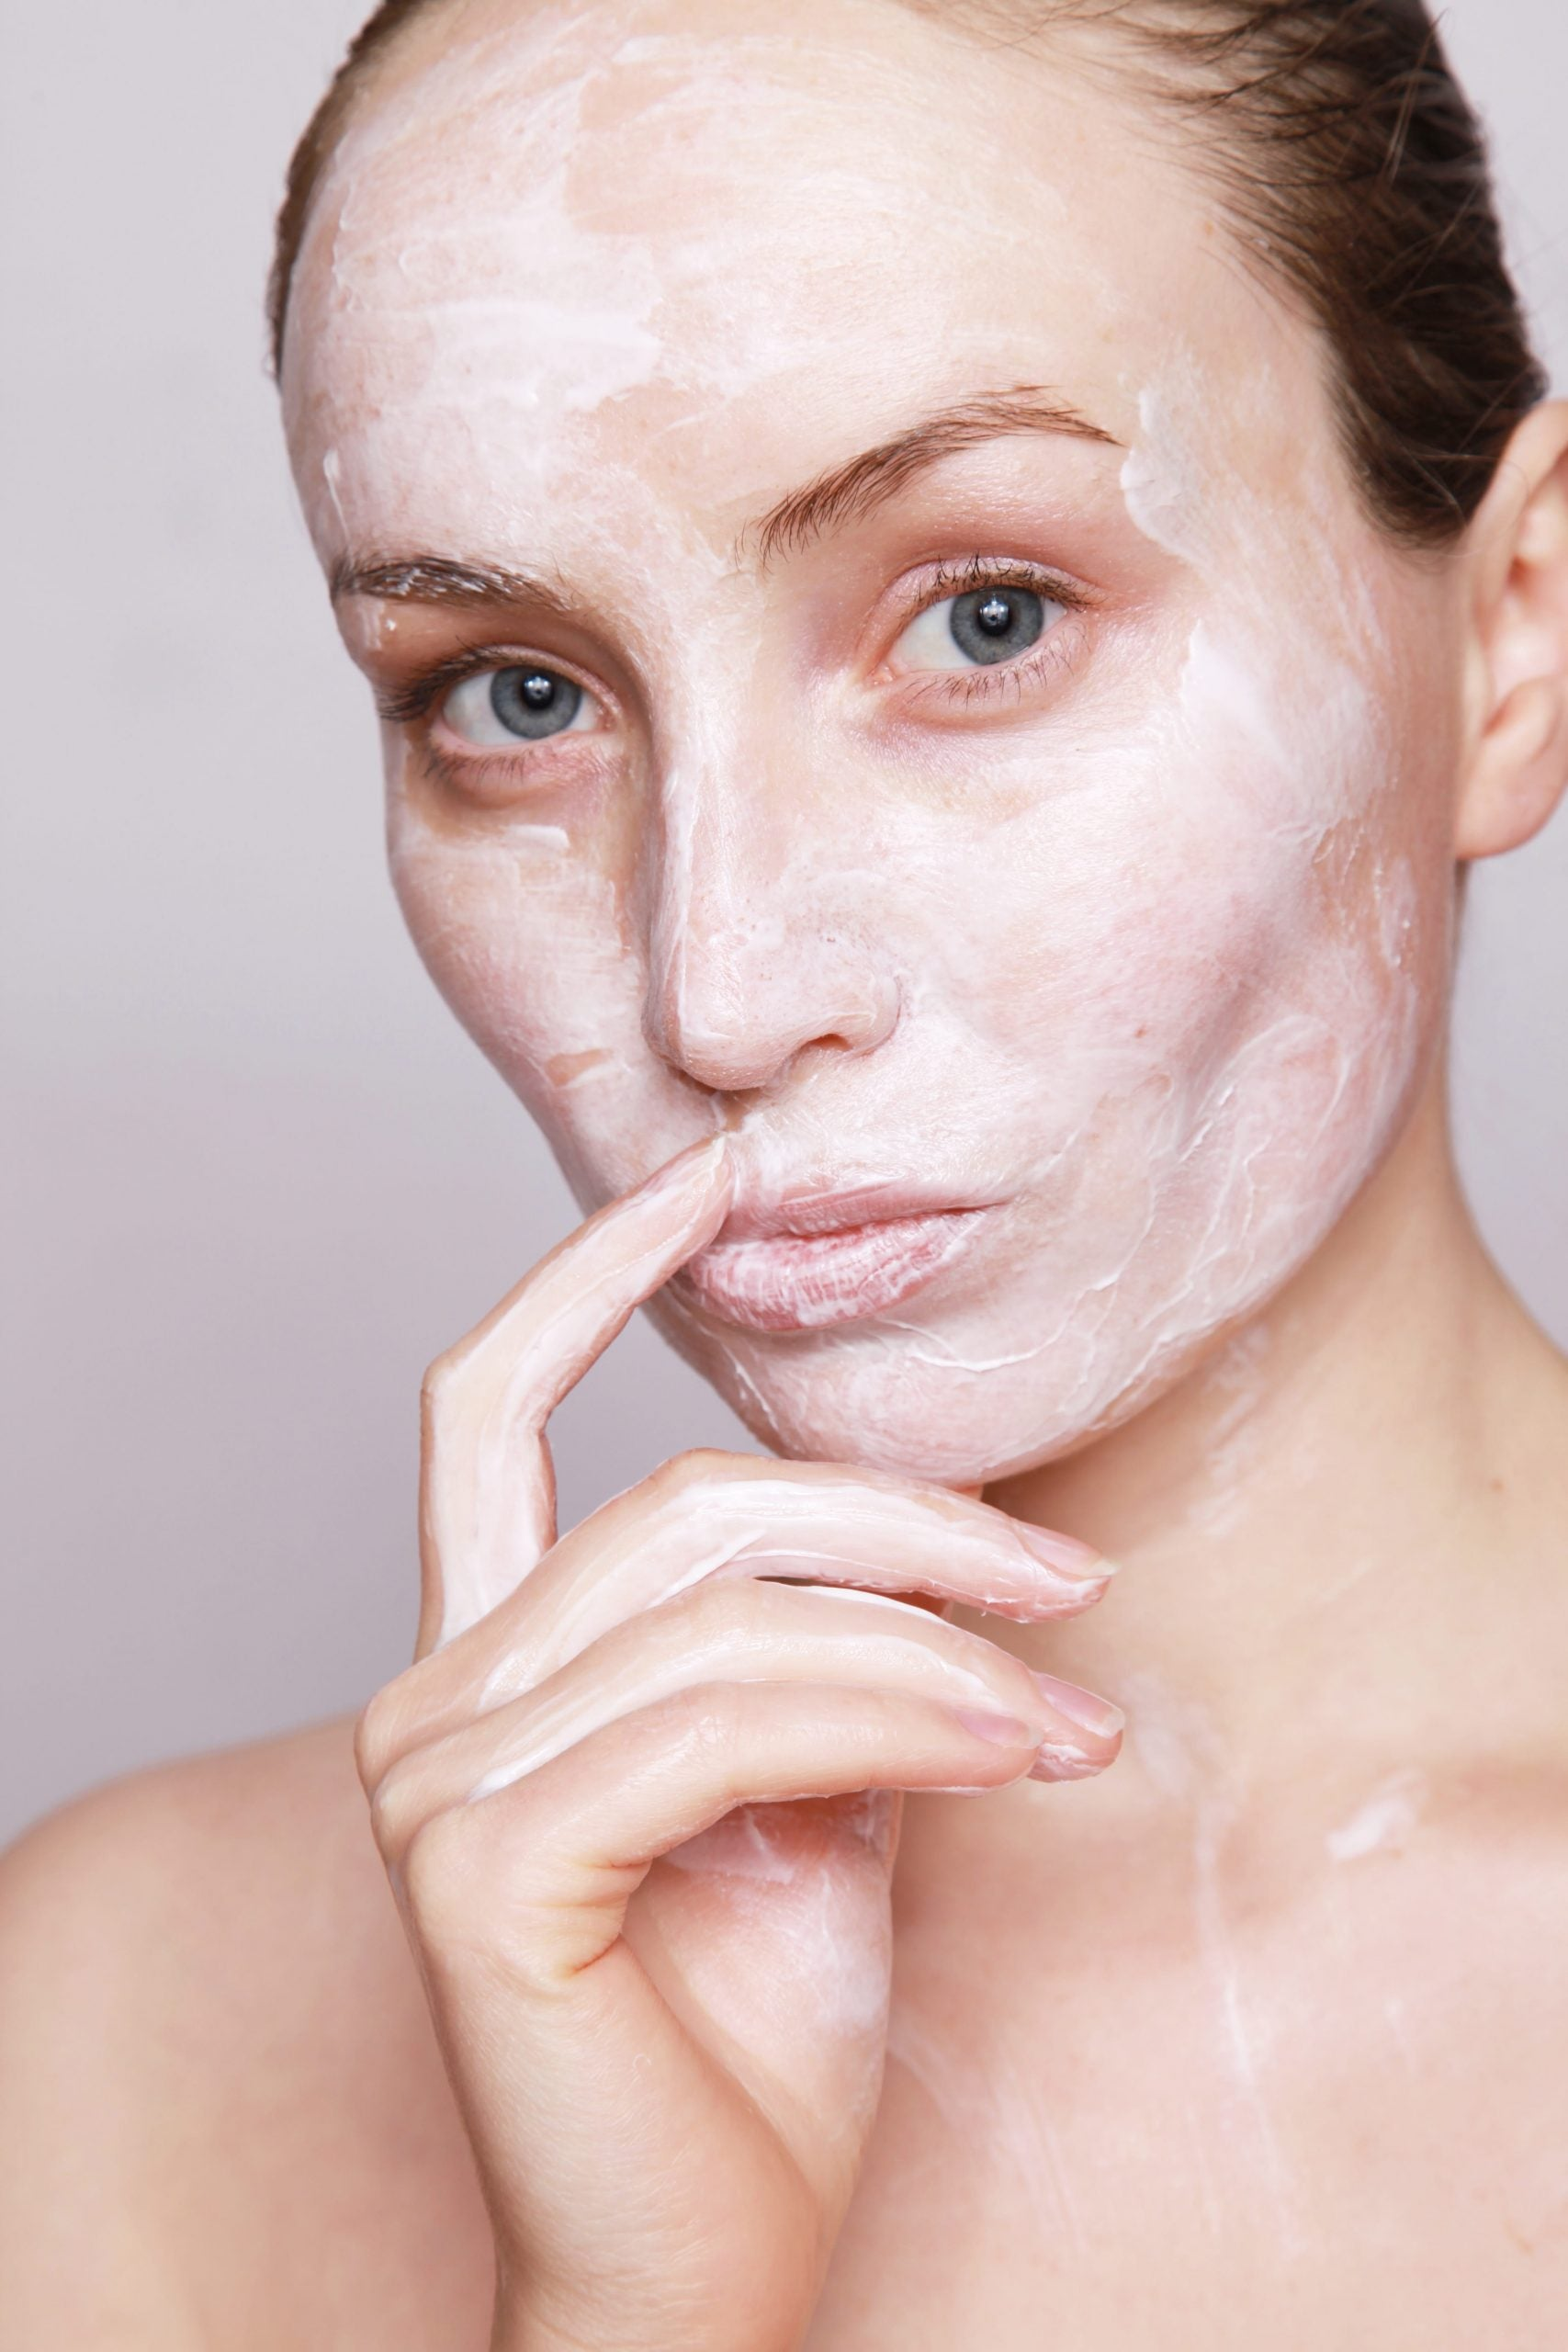 Professional skincare Vs Over the counter: Which is best?